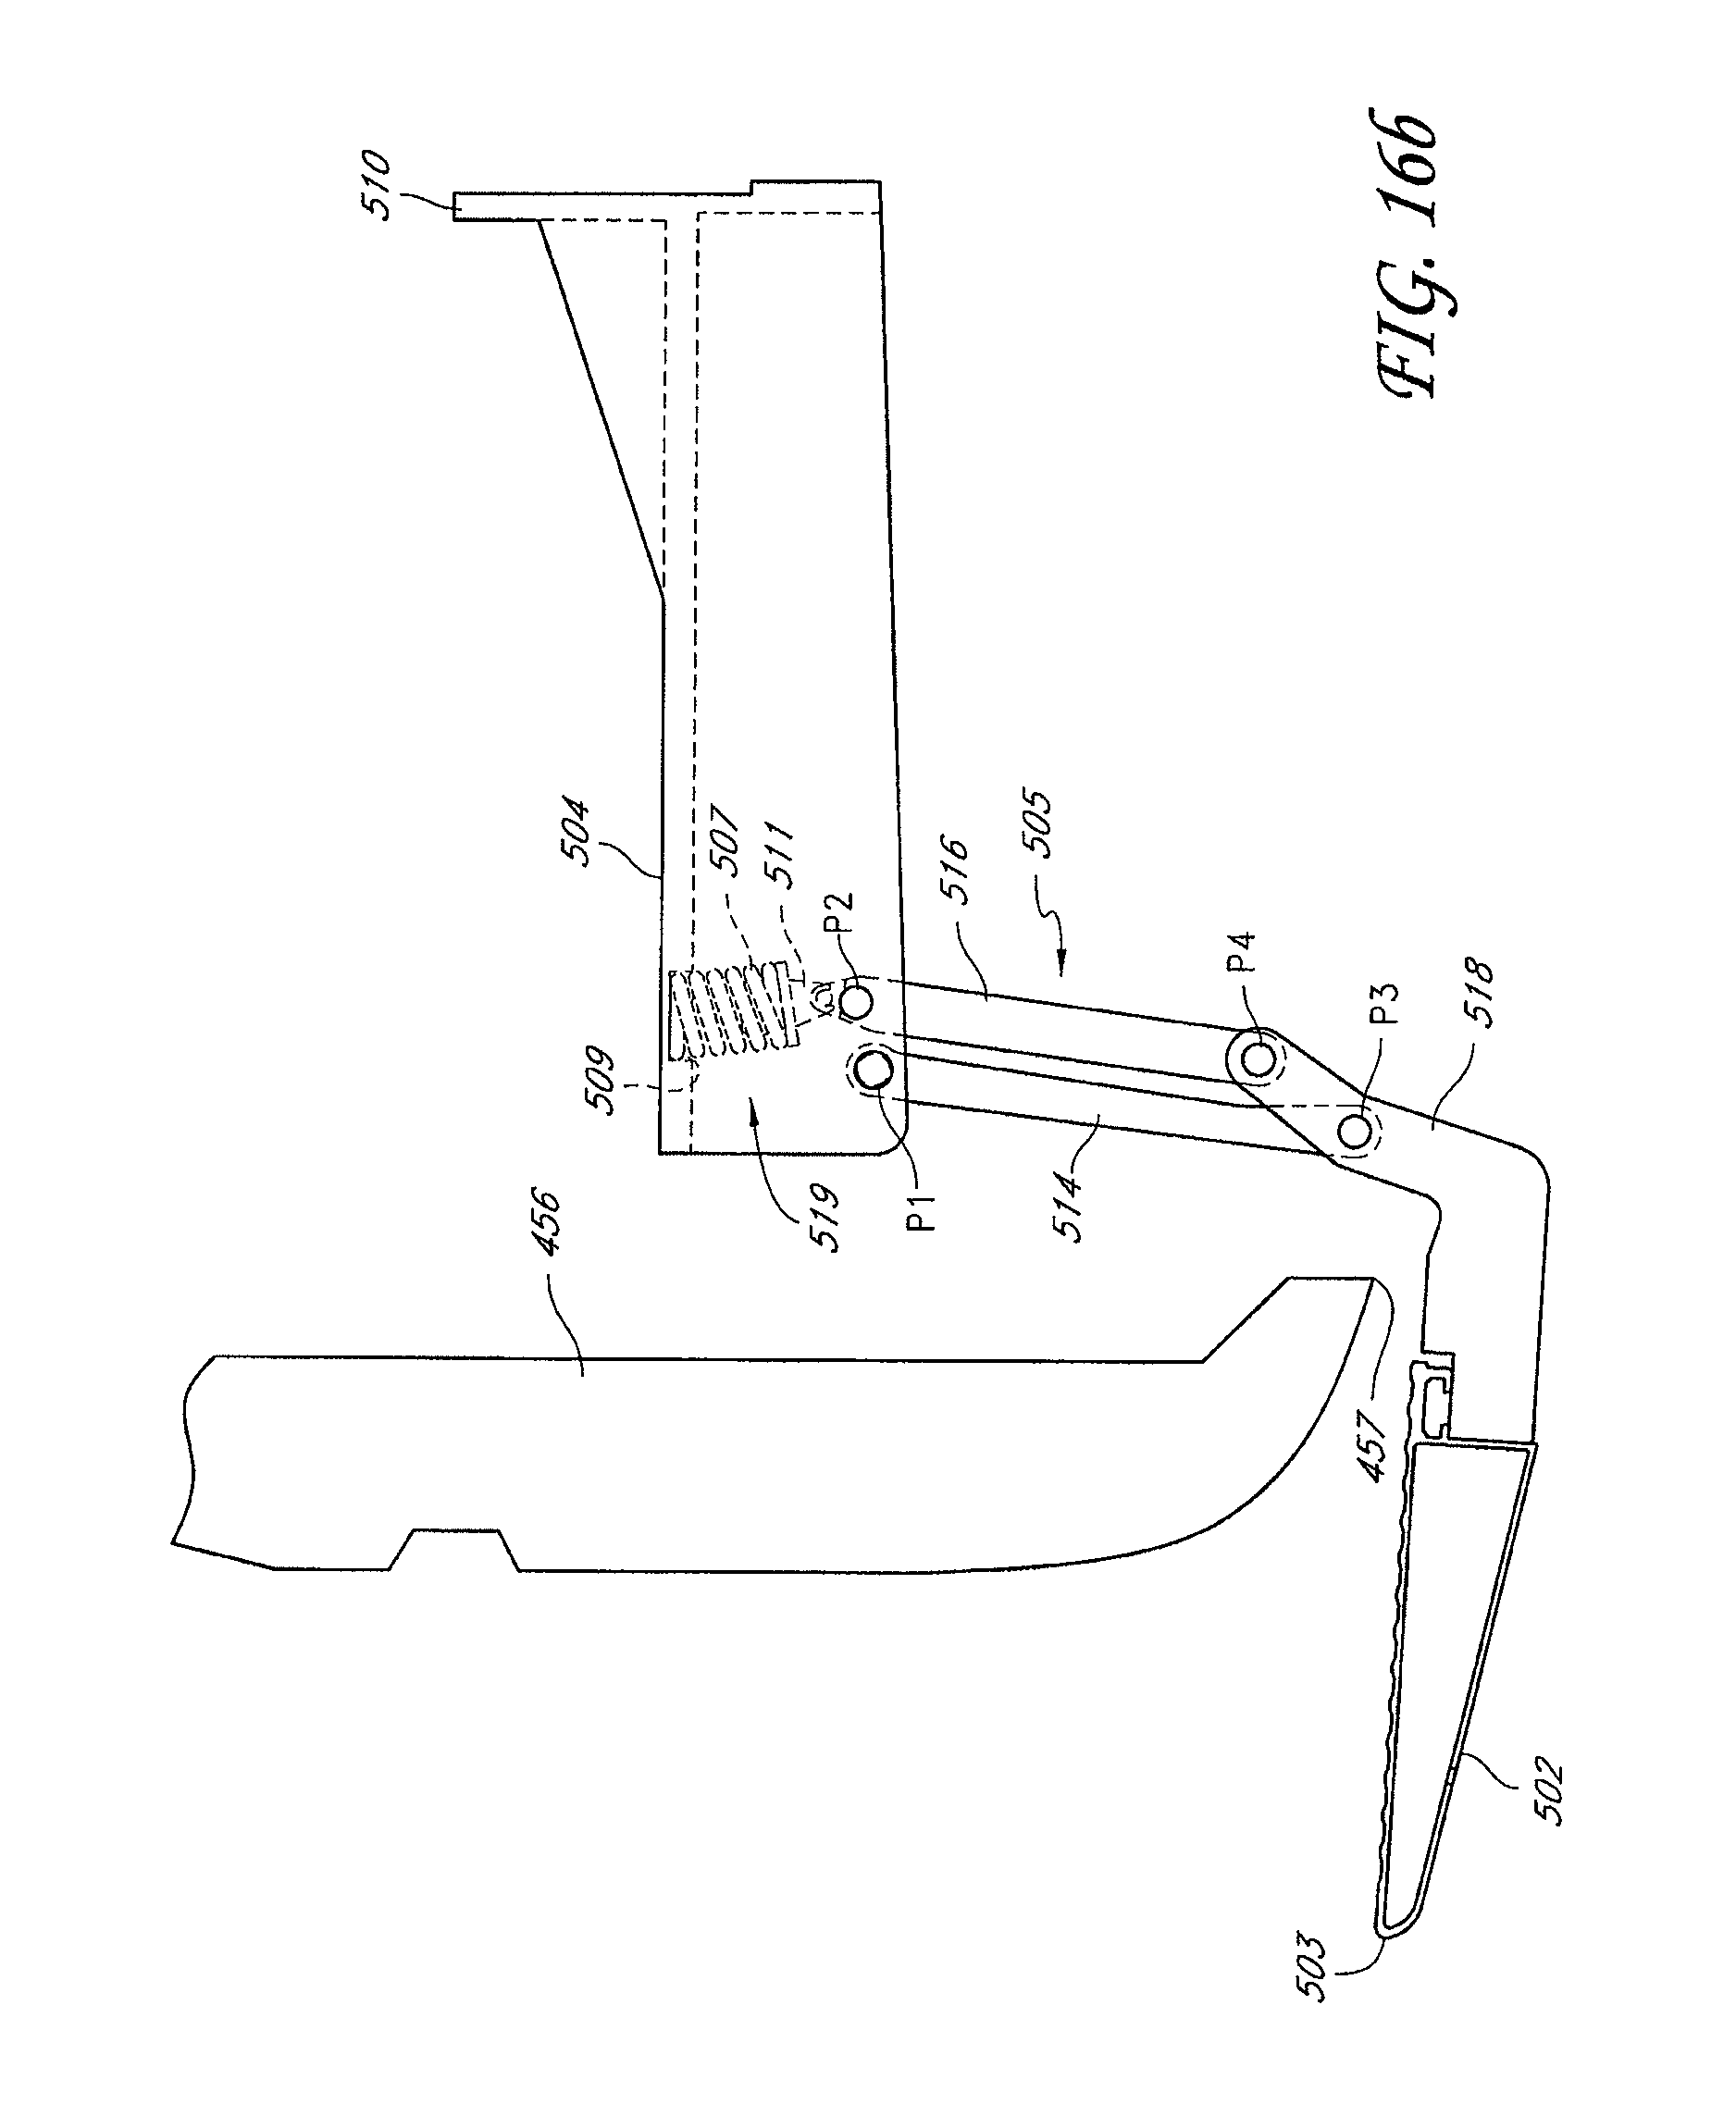 patent us 9 944 231 b2 Who Made Henry J-Cars patent images